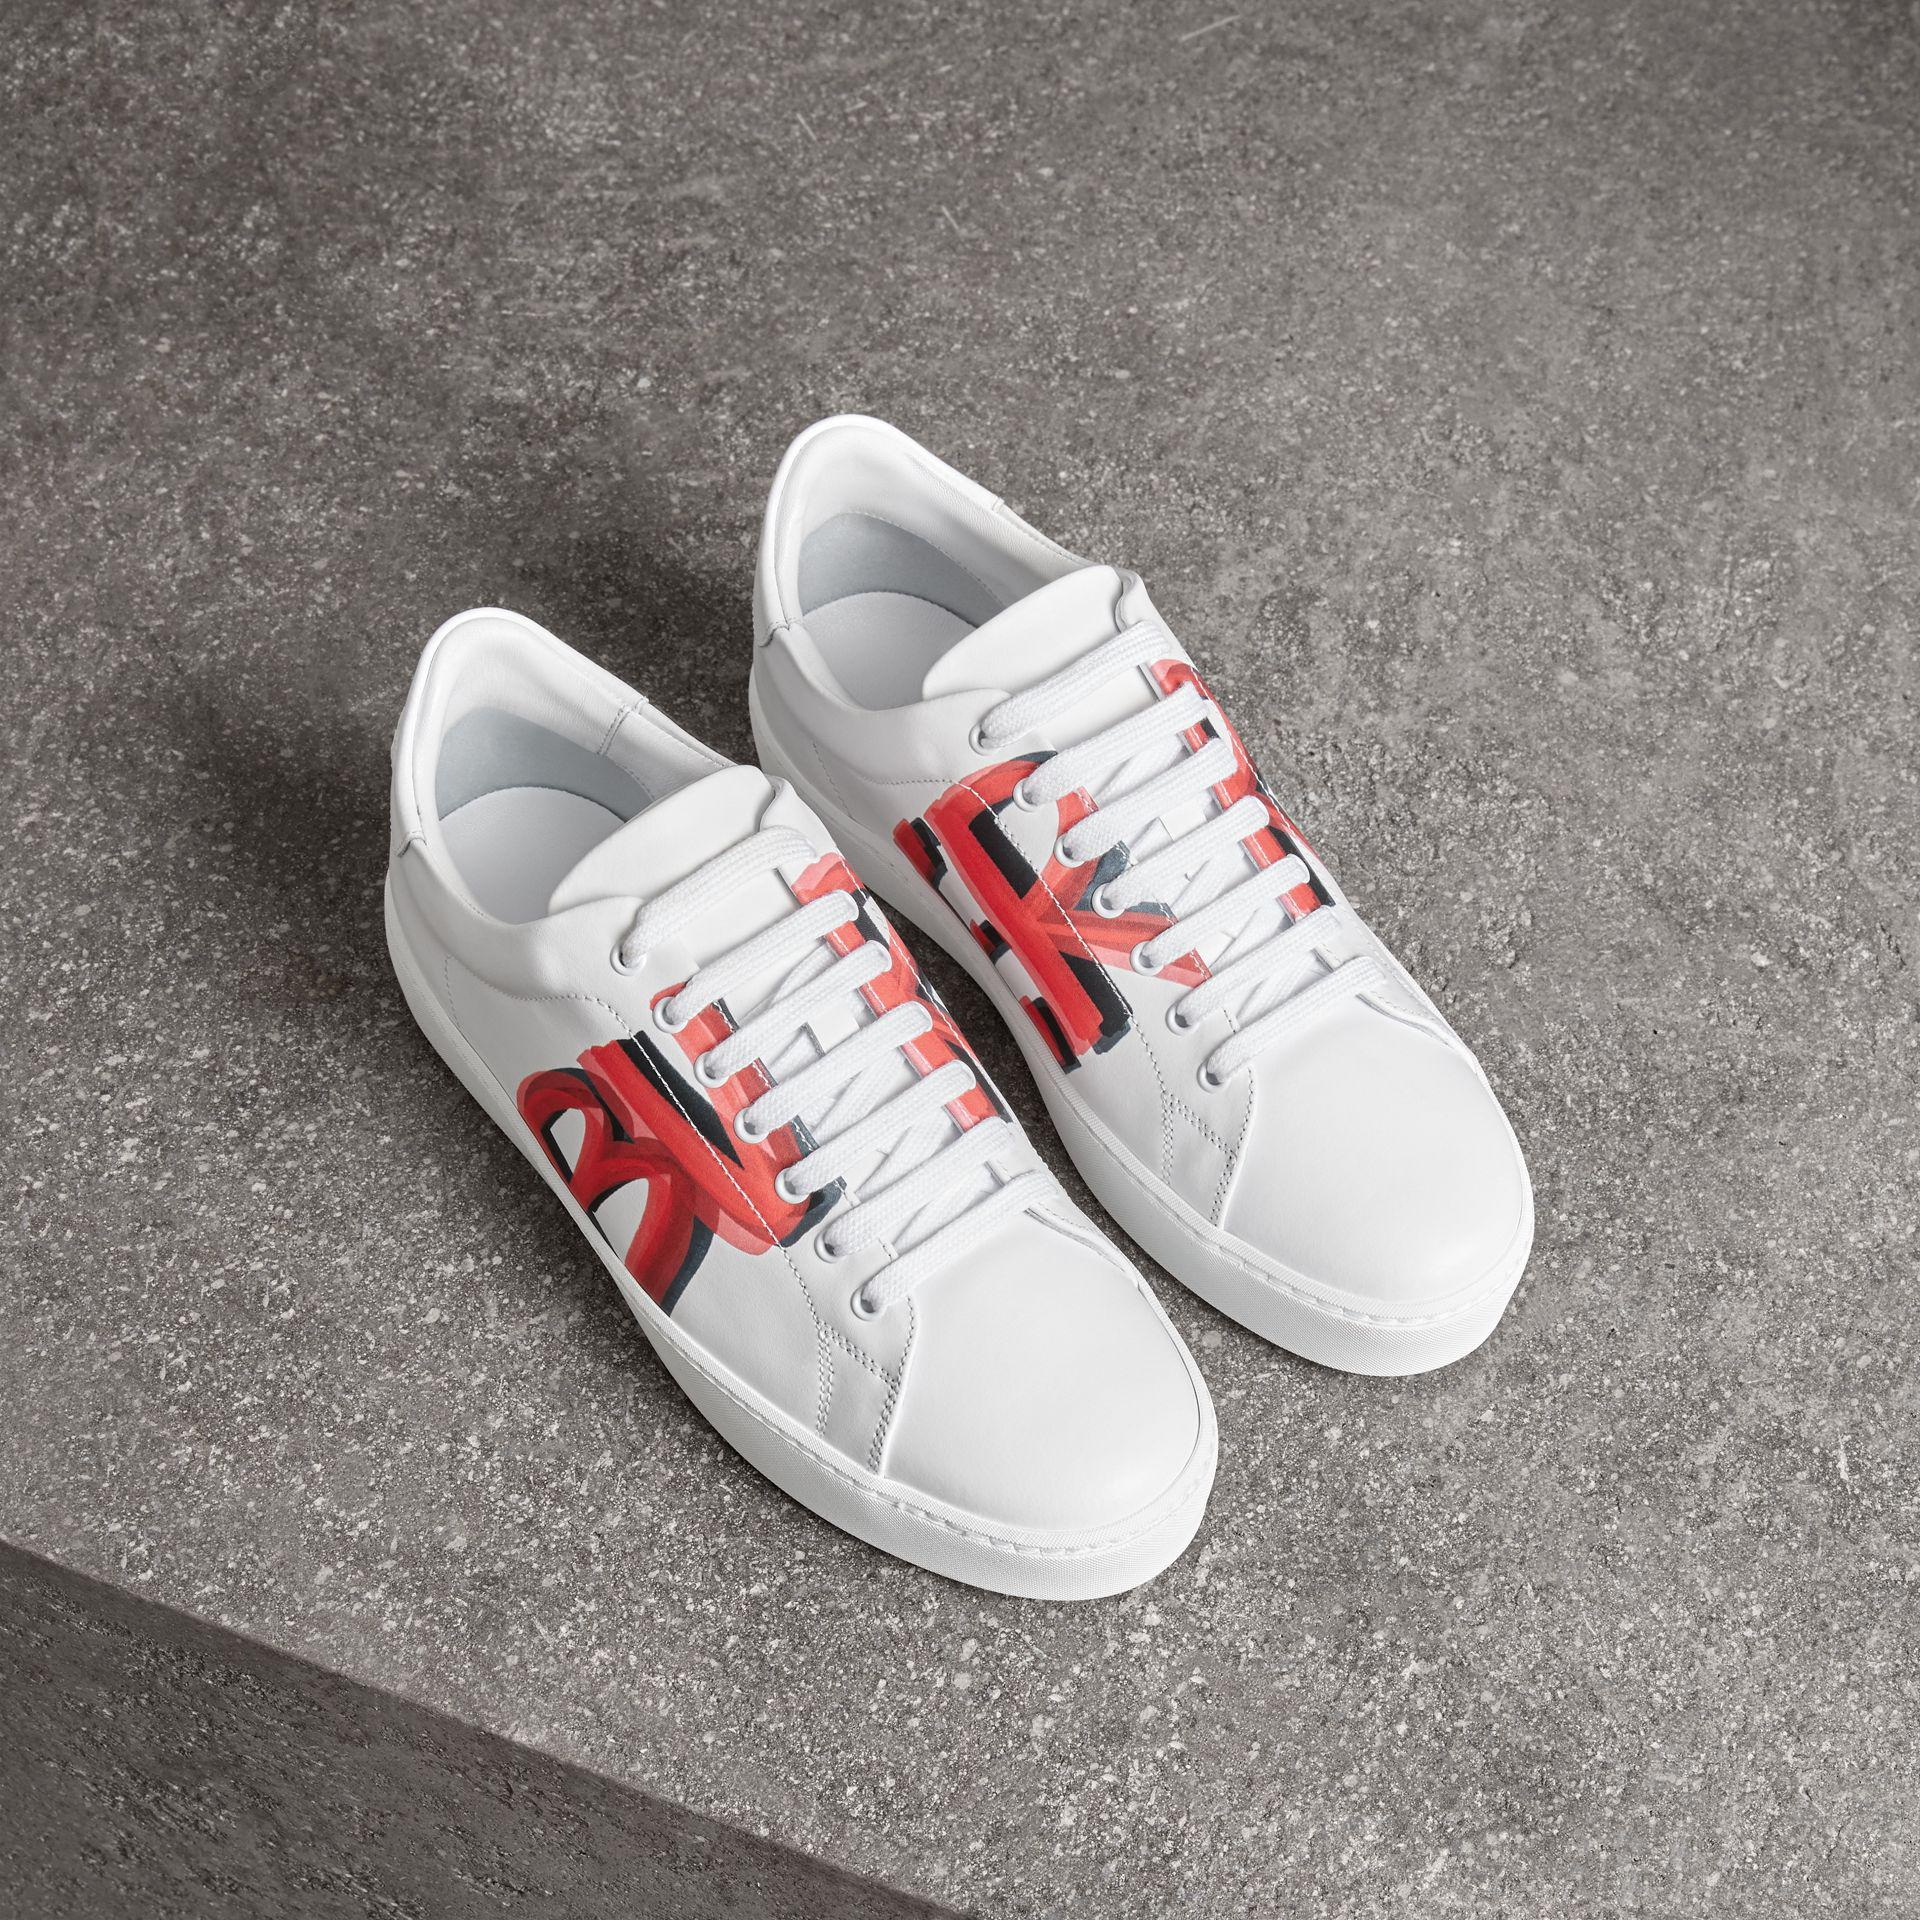 ce639564a5cc Burberry Graffiti Print Leather Sneakers - Lyst